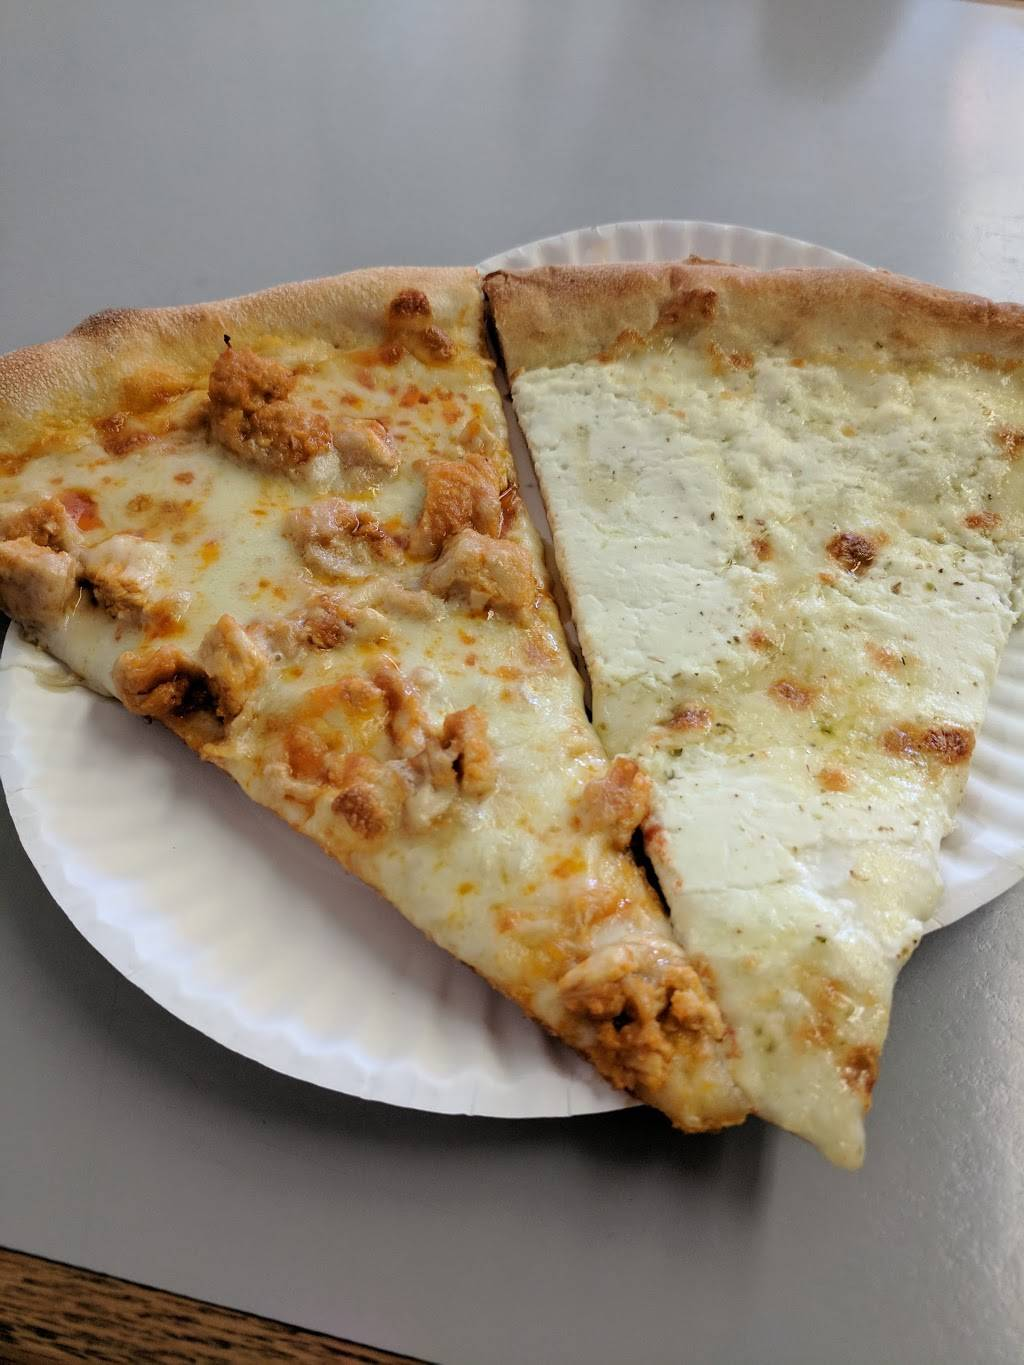 Ginos Pizzeria   restaurant   380 Central Ave, Jersey City, NJ 07307, USA   2016596464 OR +1 201-659-6464